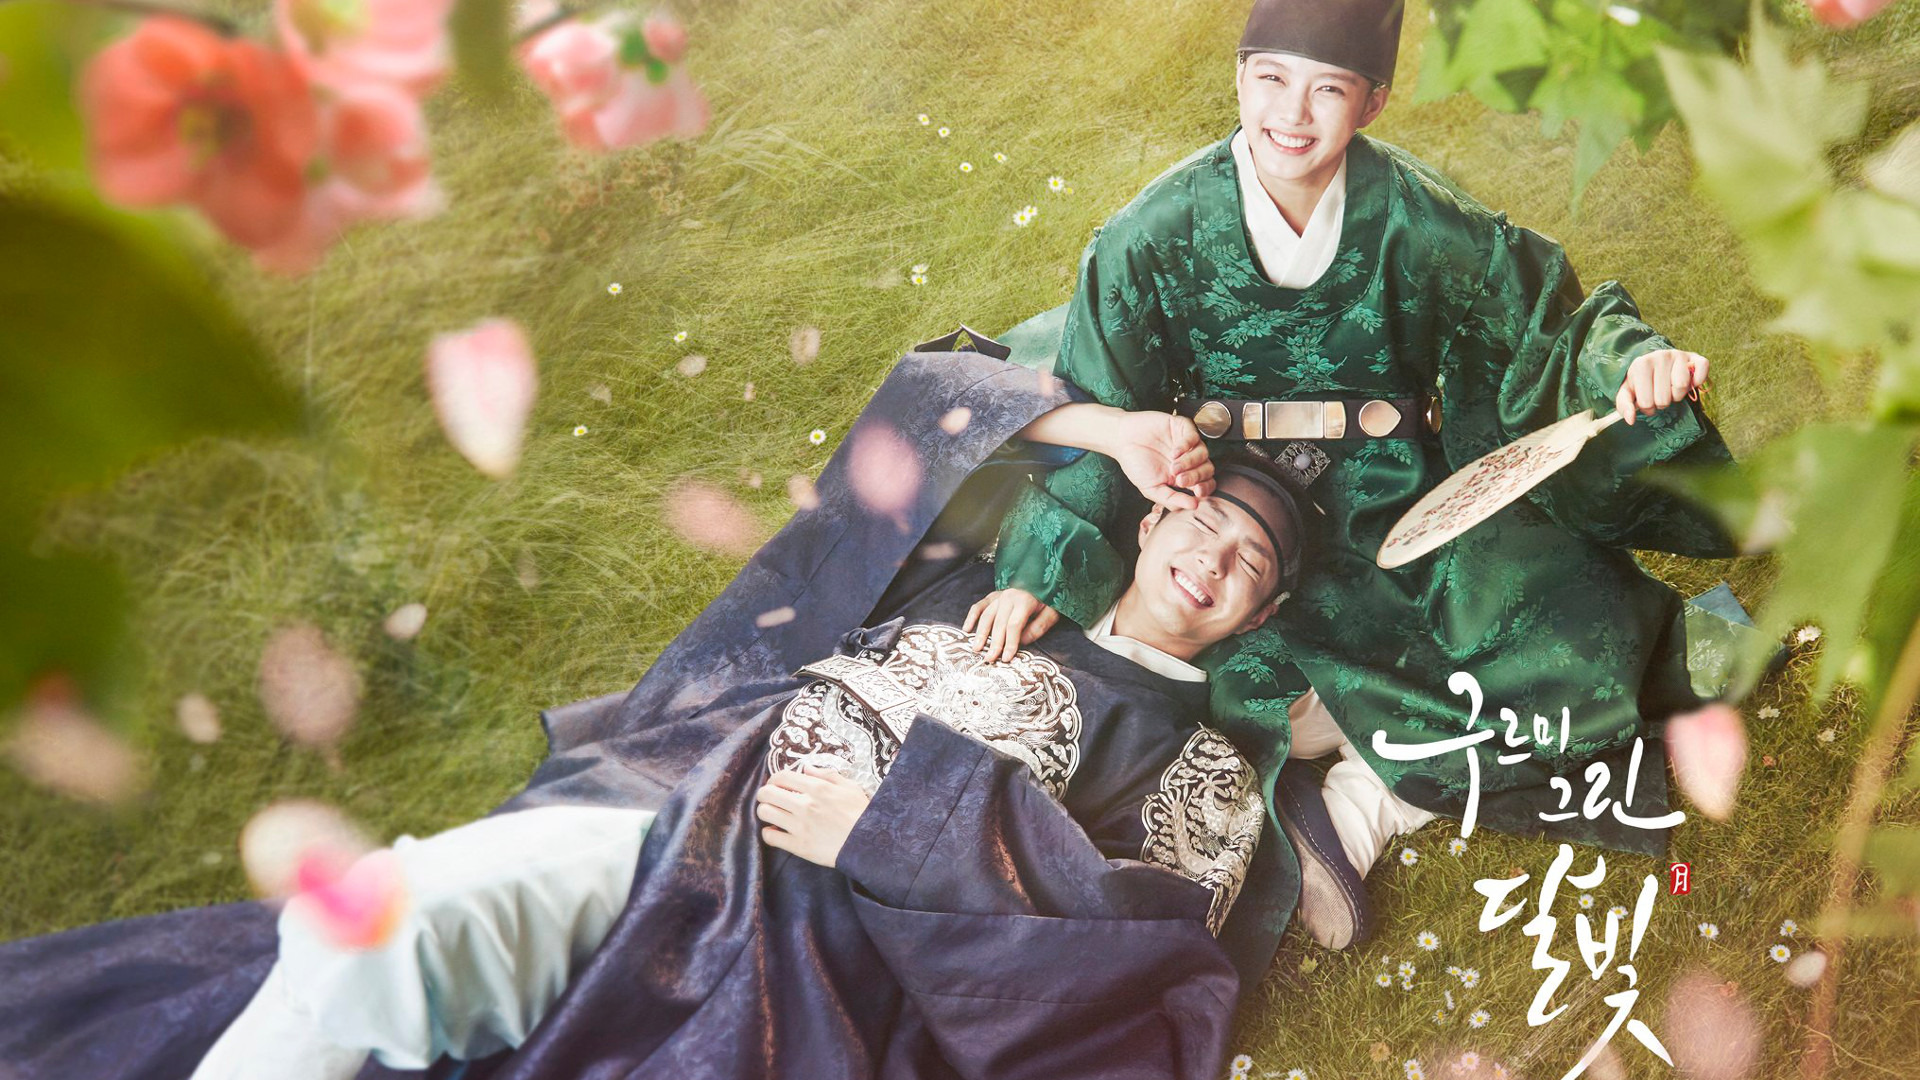 Show Moonlight Drawn by Clouds